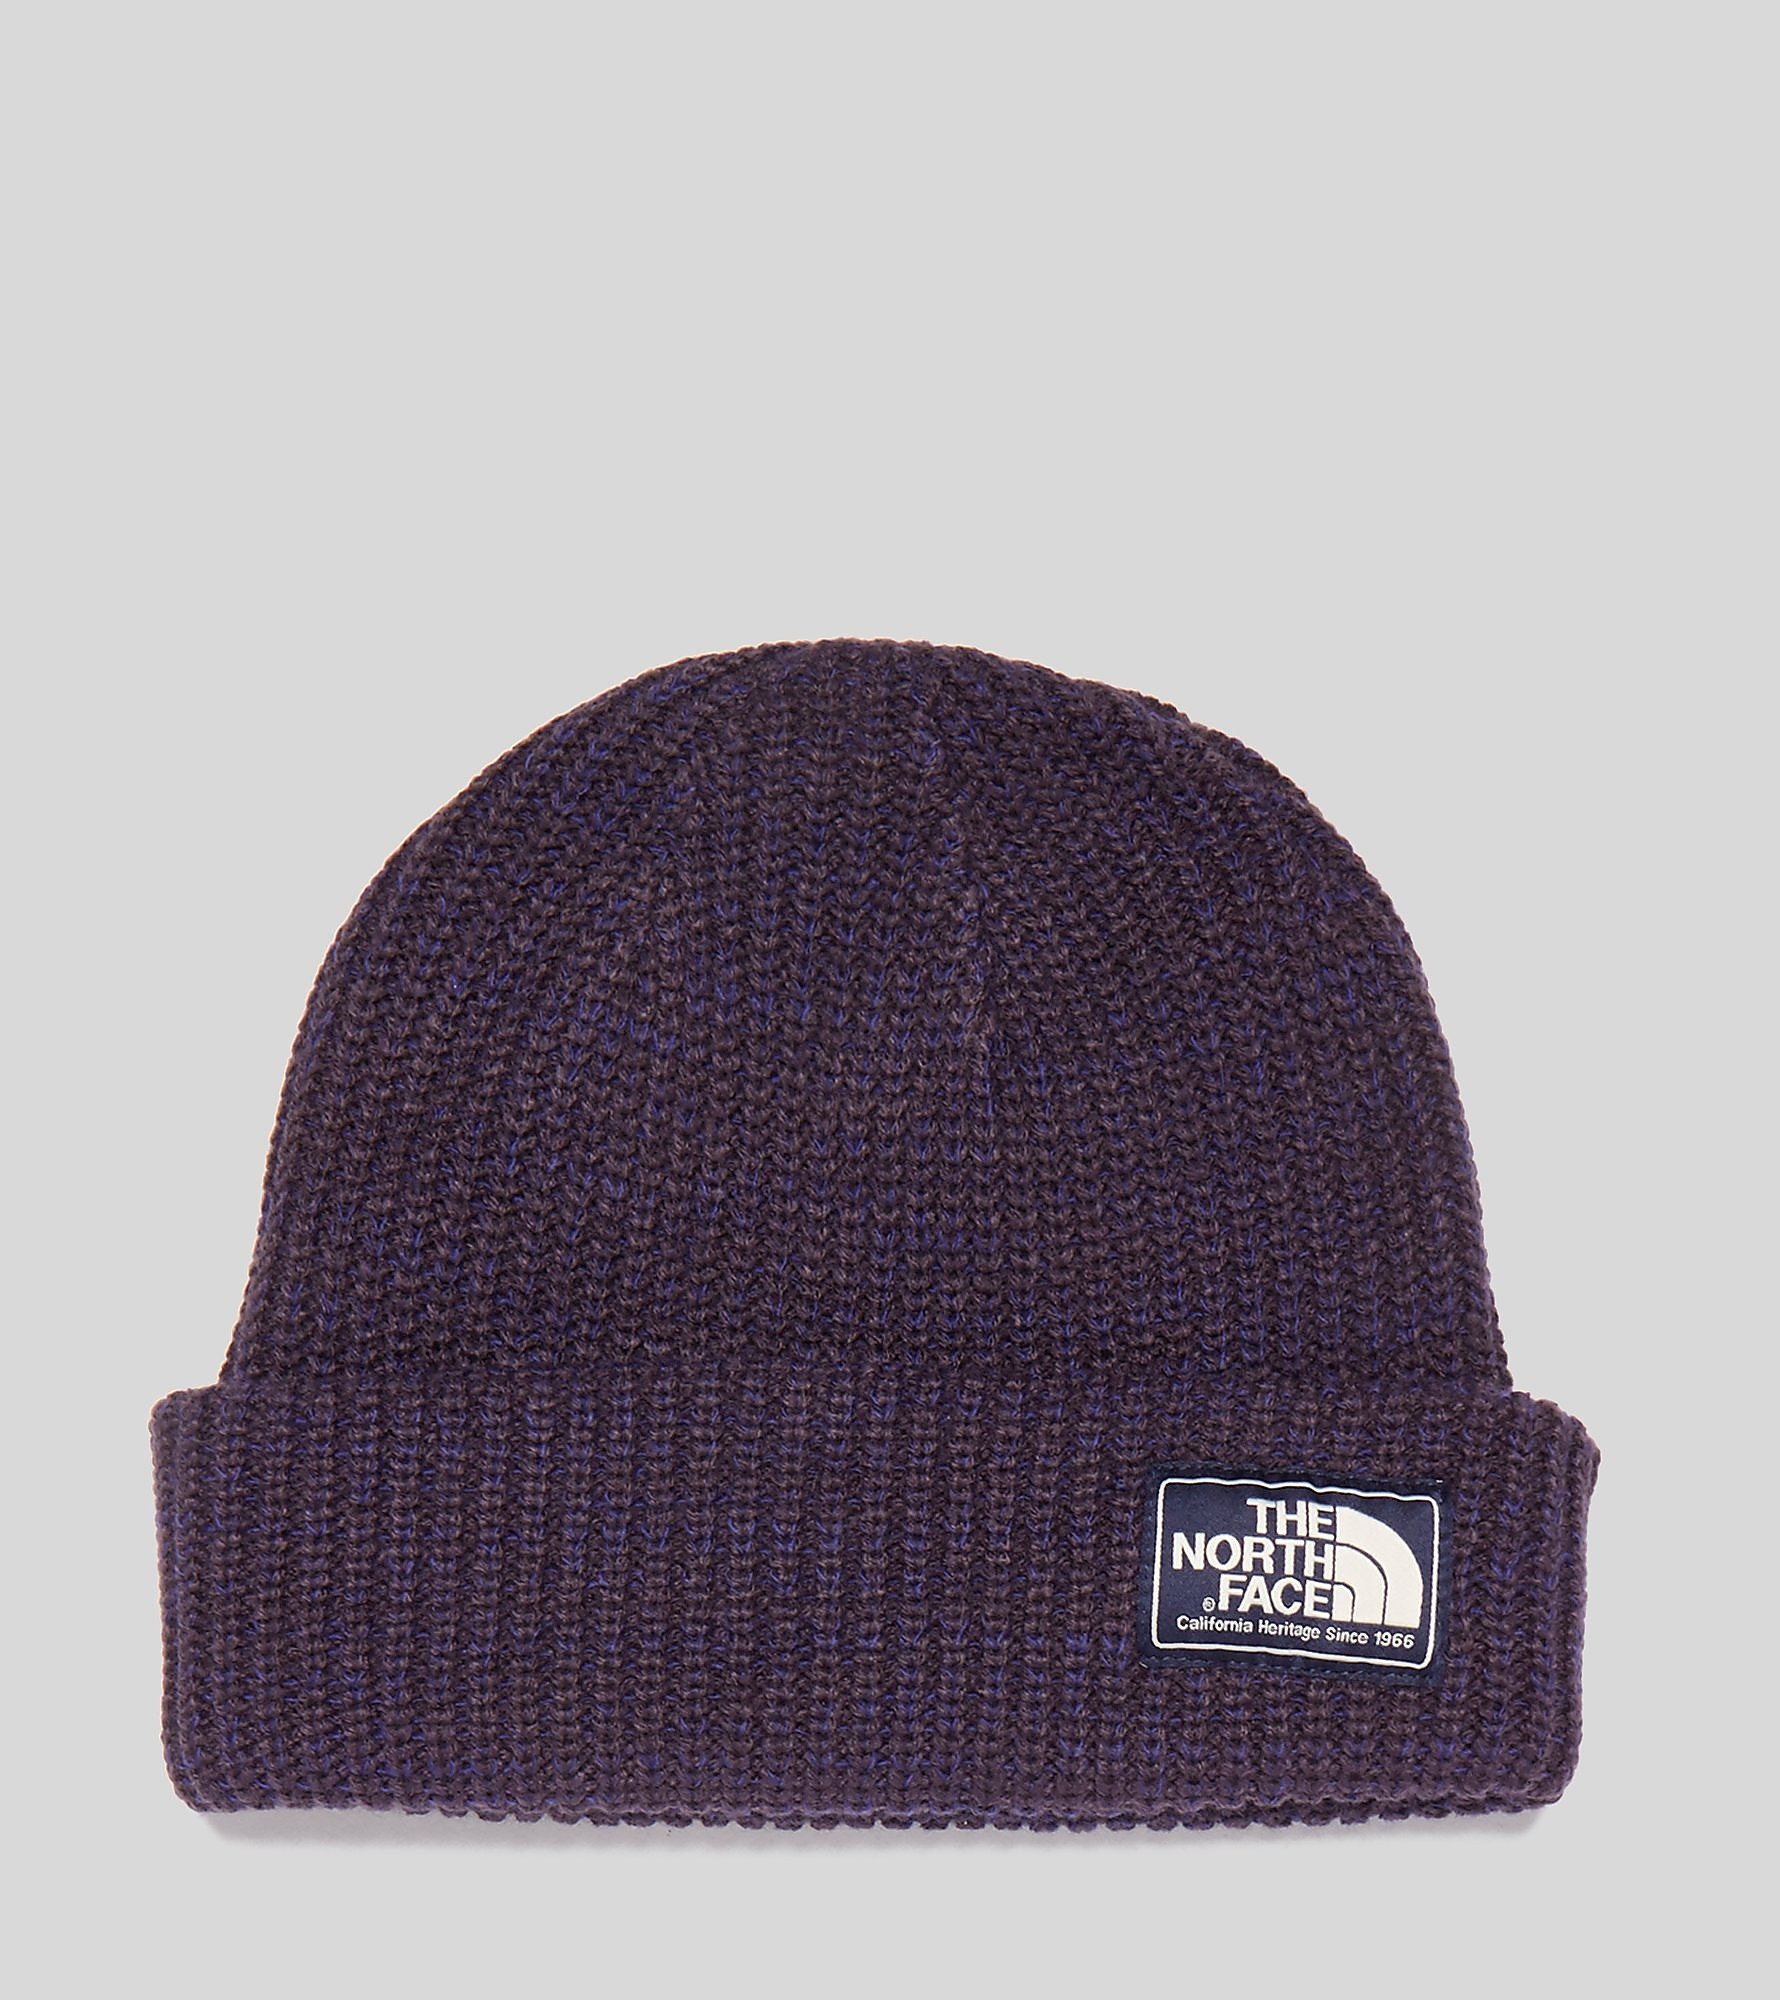 The North Face Bonnet Salty Dog